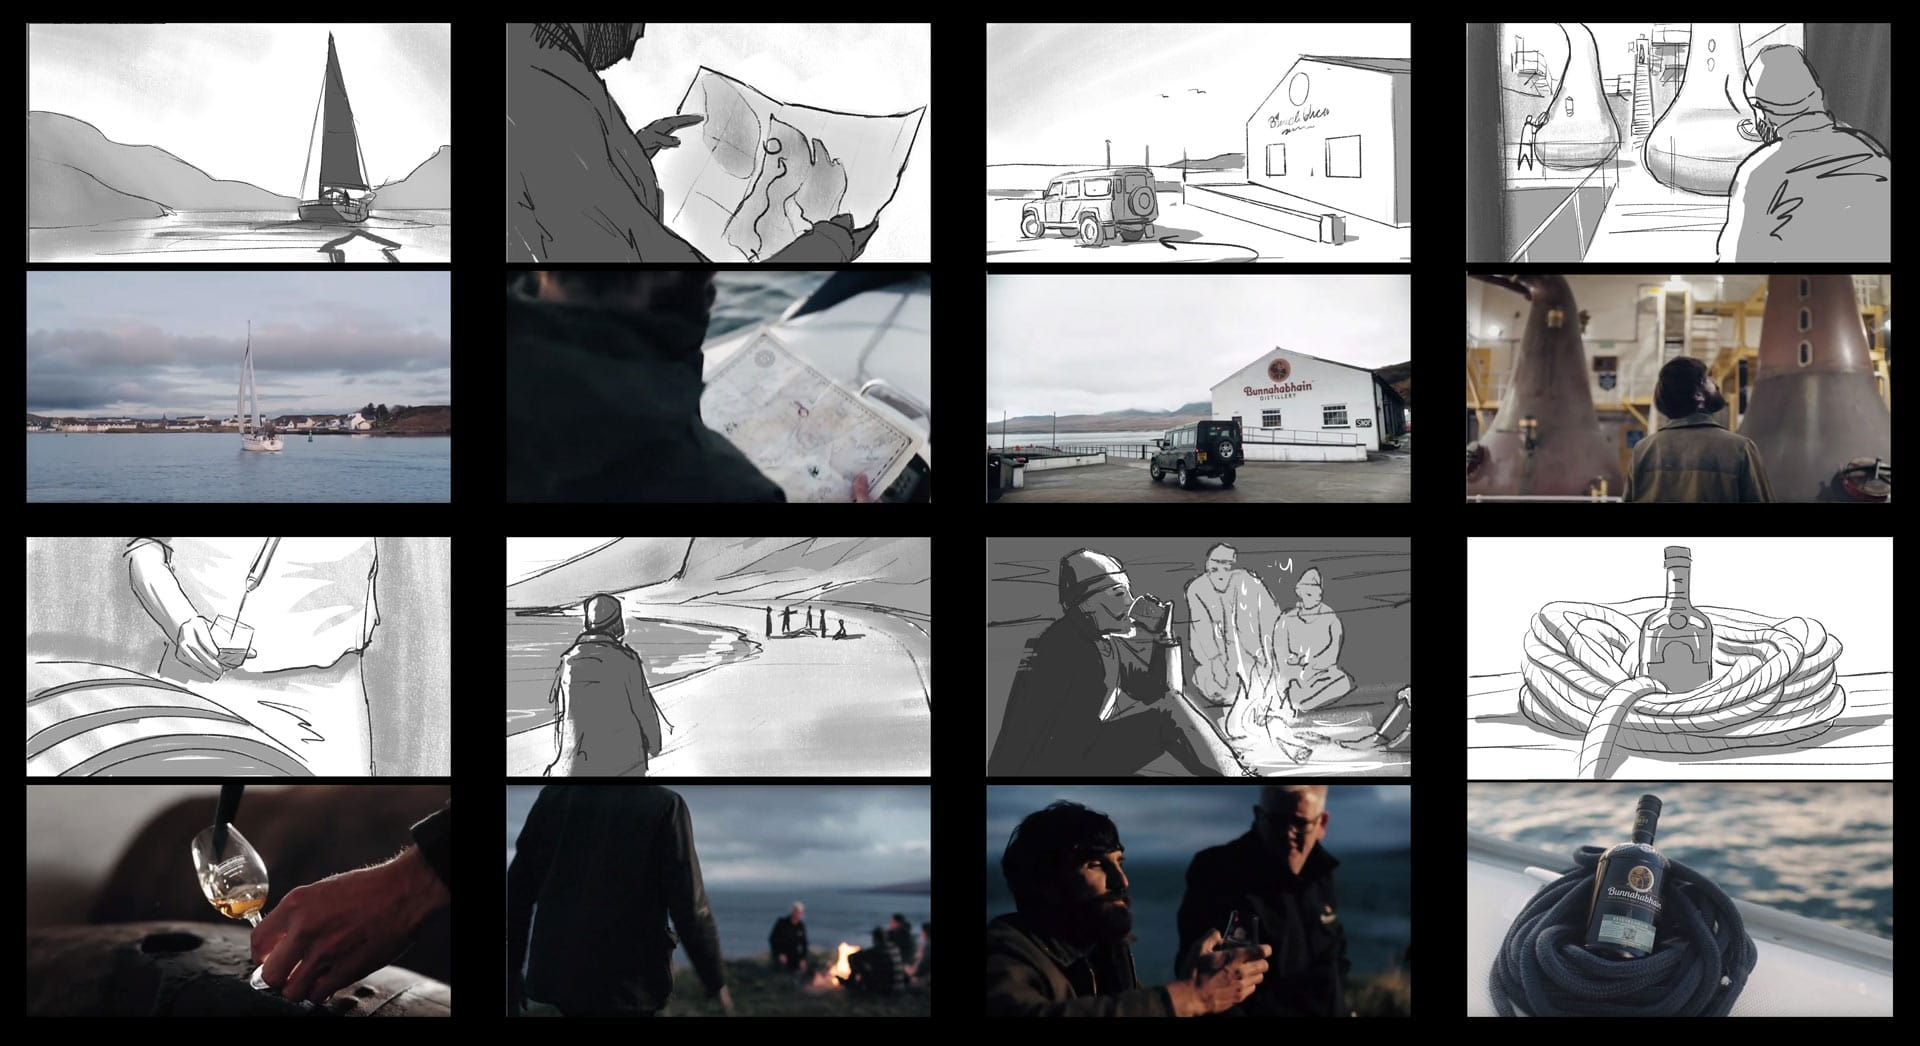 Bunnahabhain whiskey advertisment storyboard comparision for Campfire agency by Jakub Cichecki